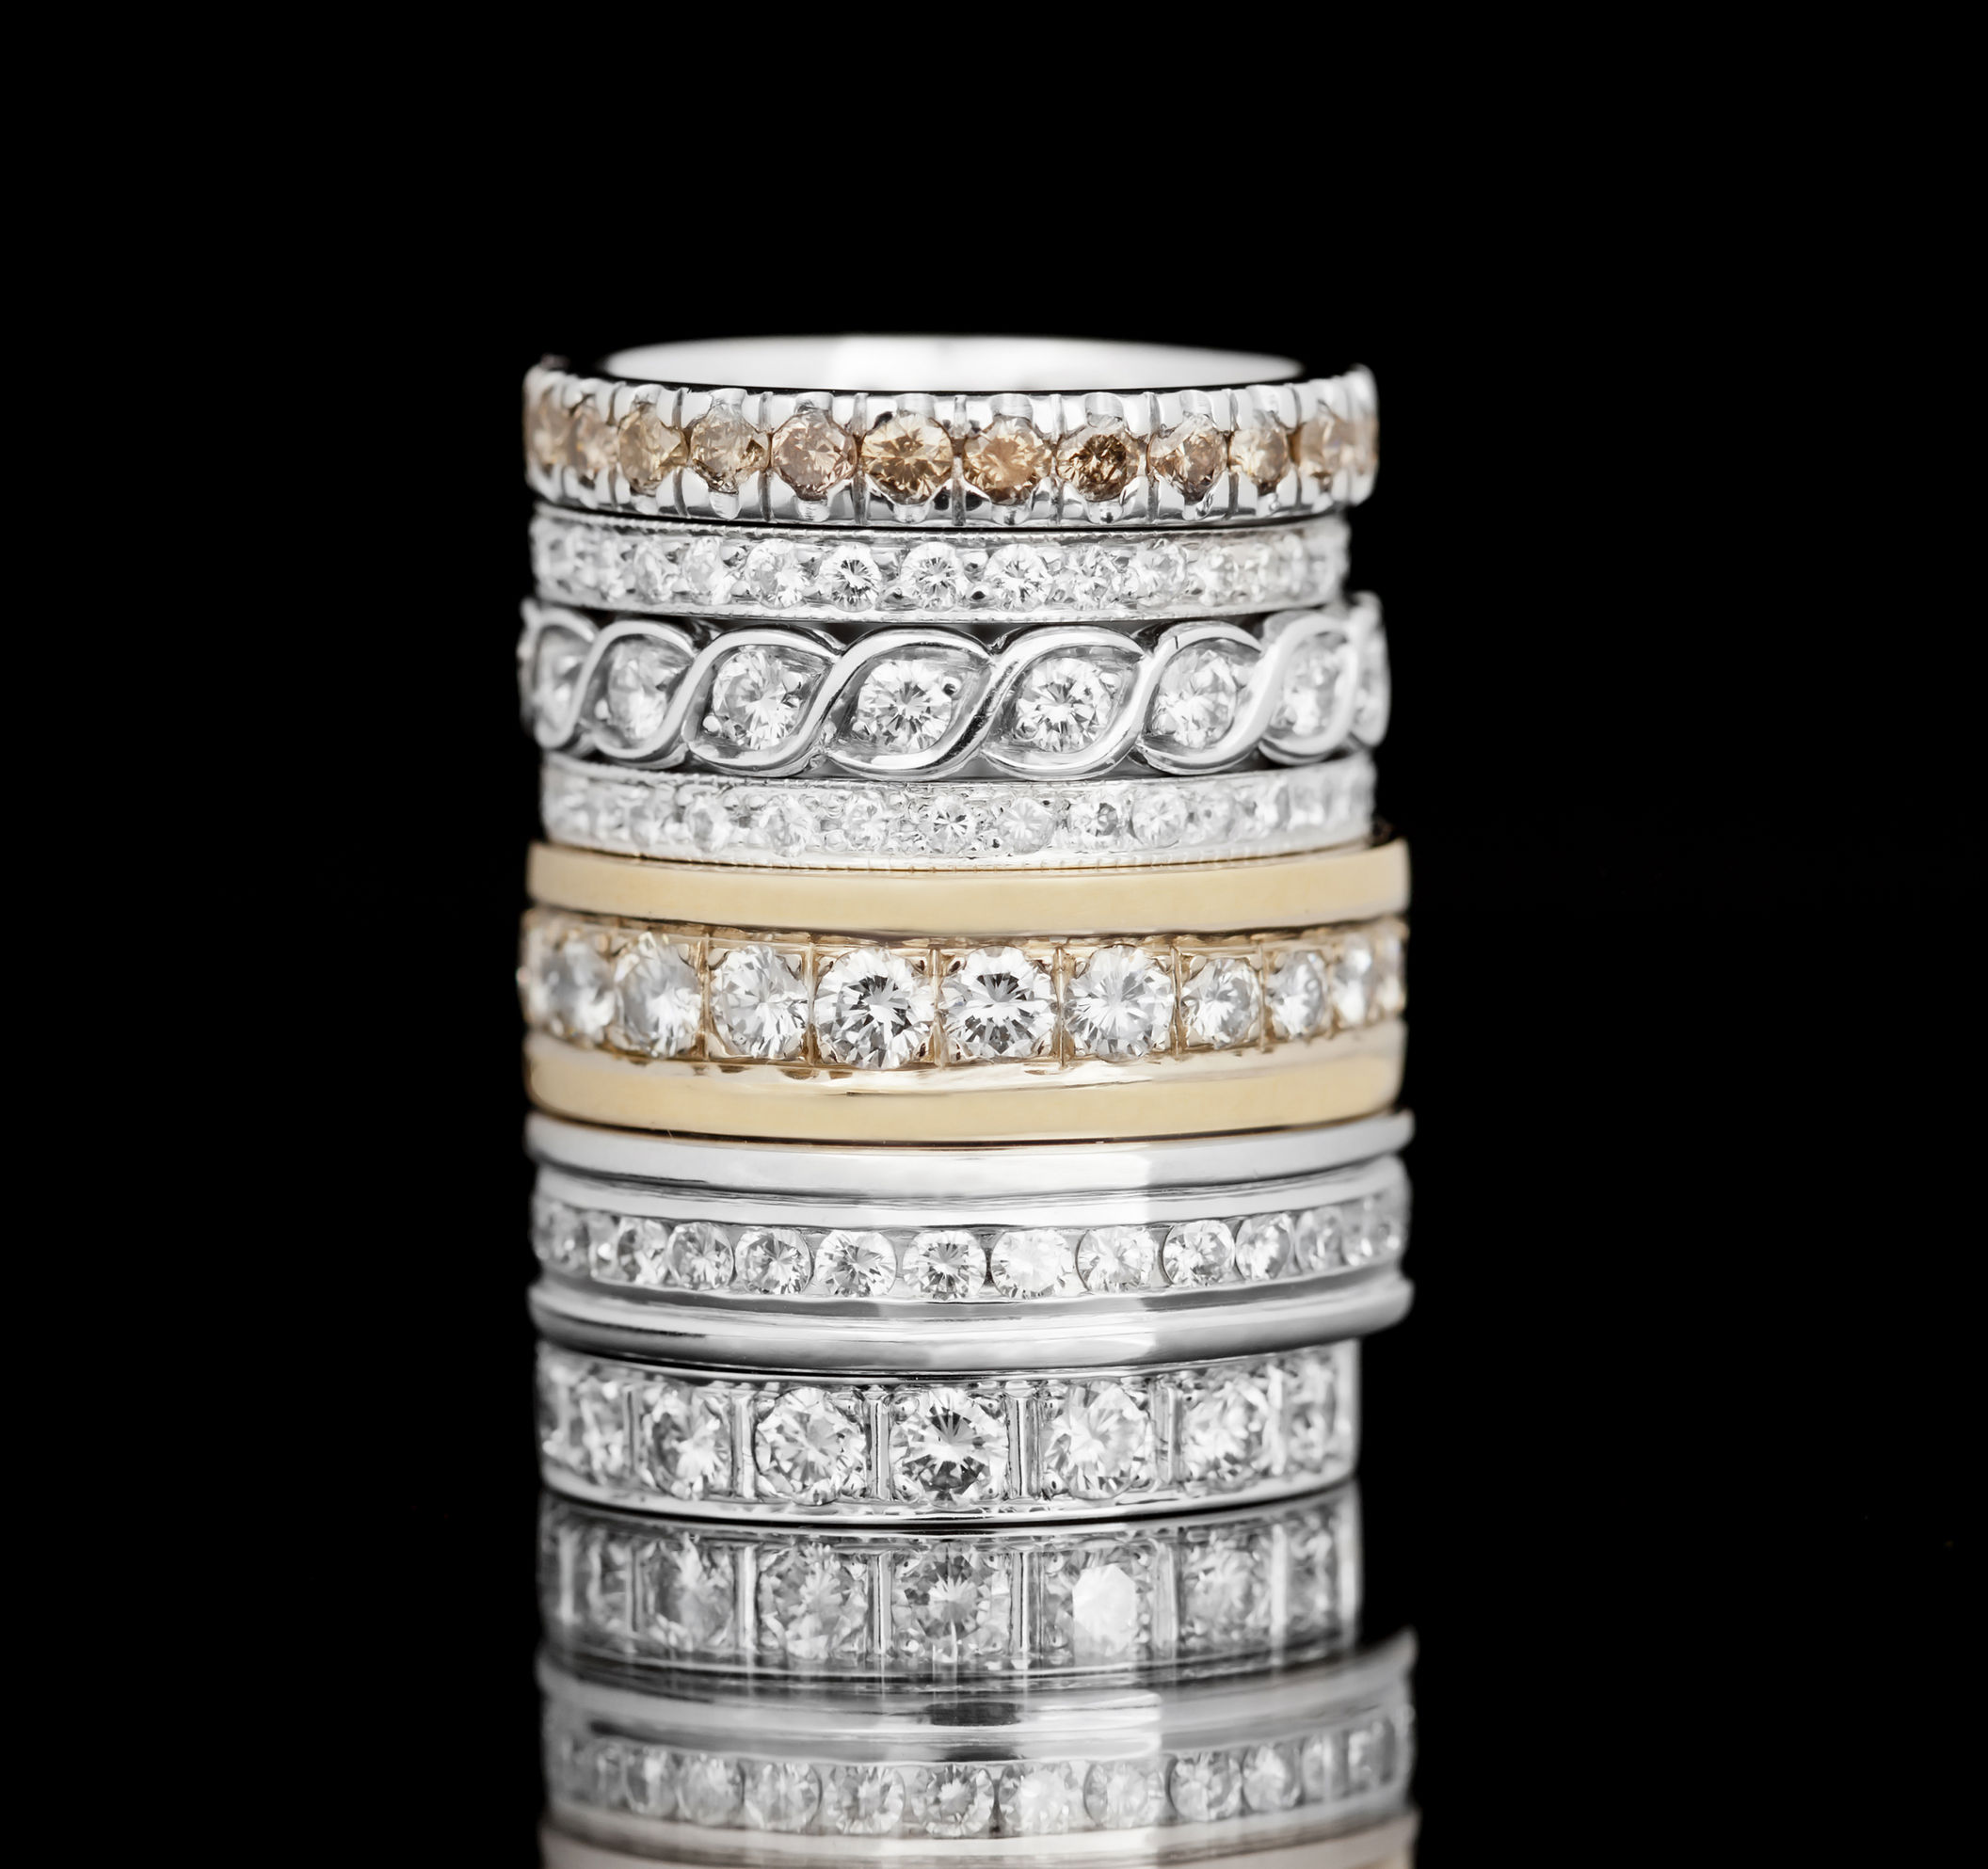 Enjoy our Monthly Jewelry Specials - Diamonds Are Forever